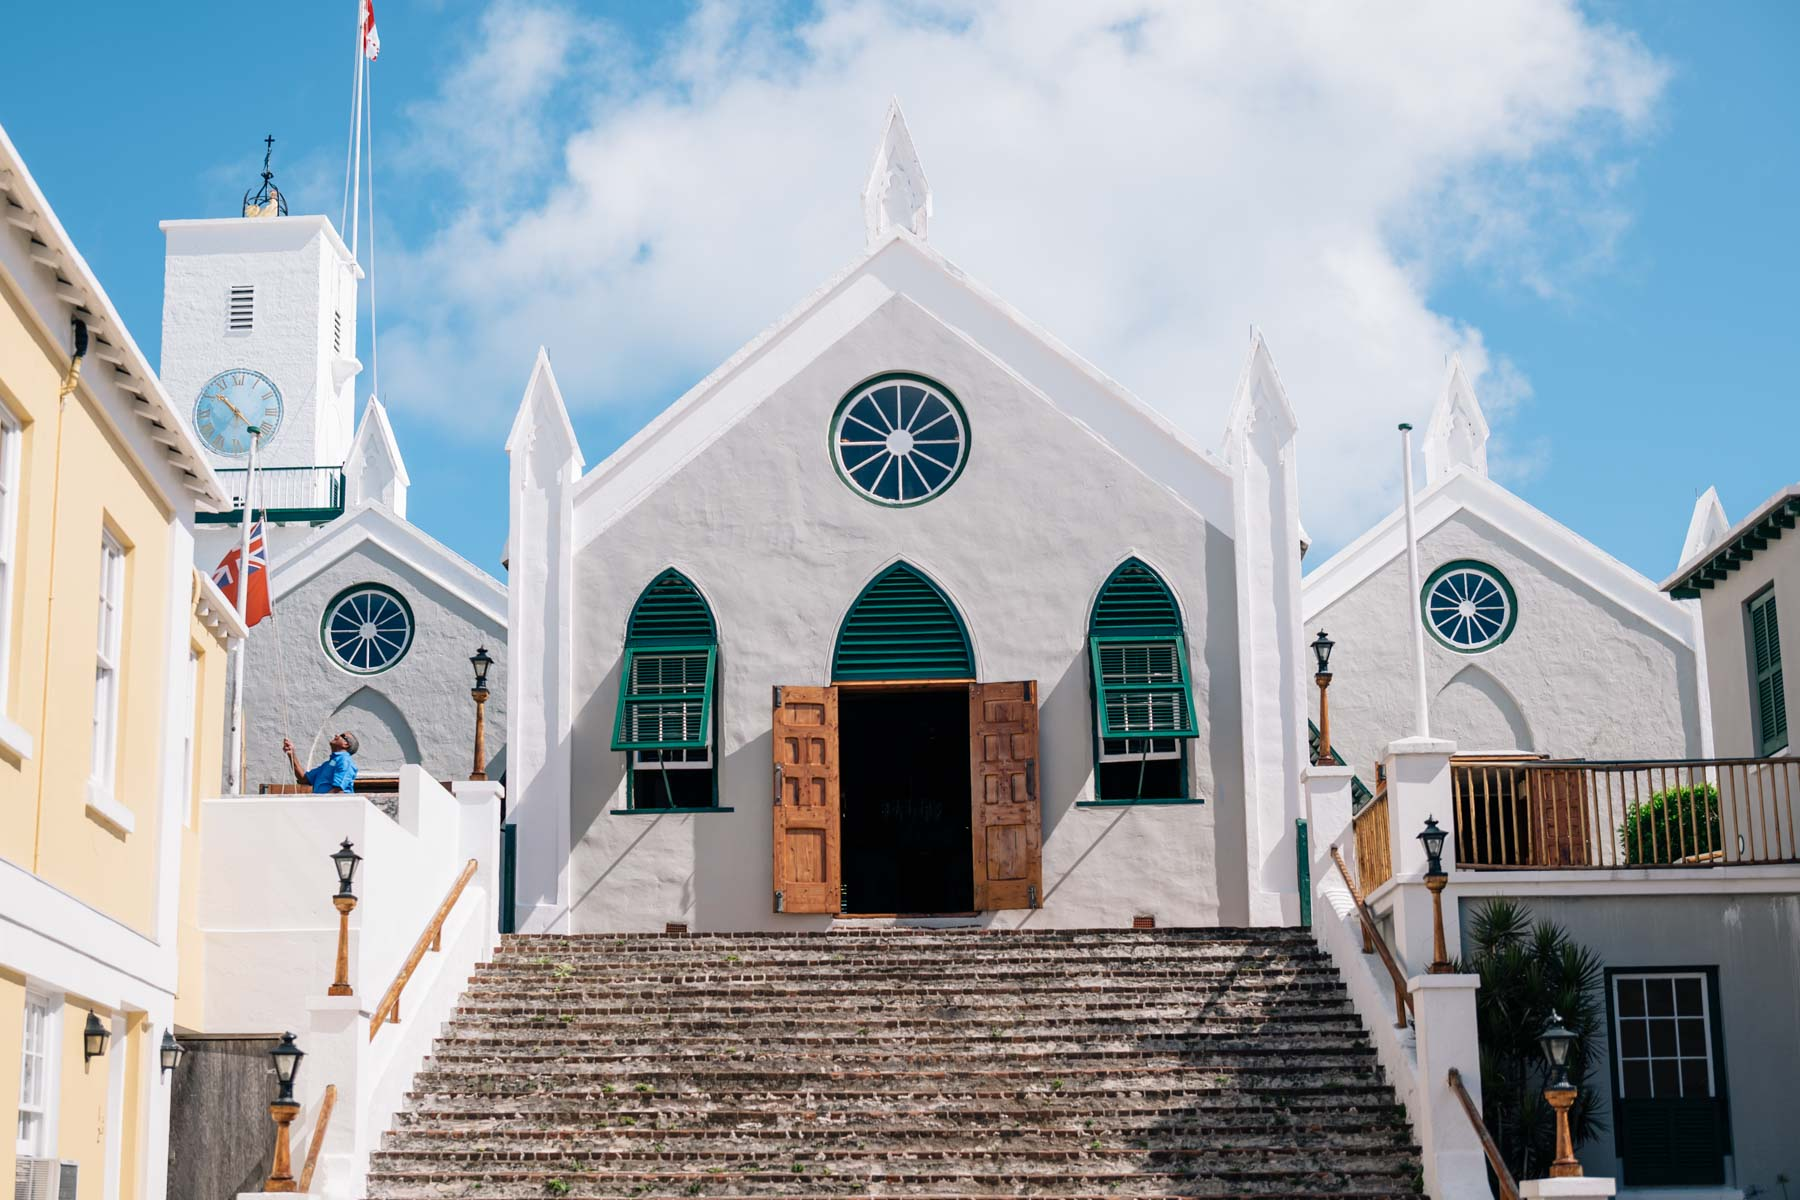 A beautiful old church on Saint Georges Island in Bermuda